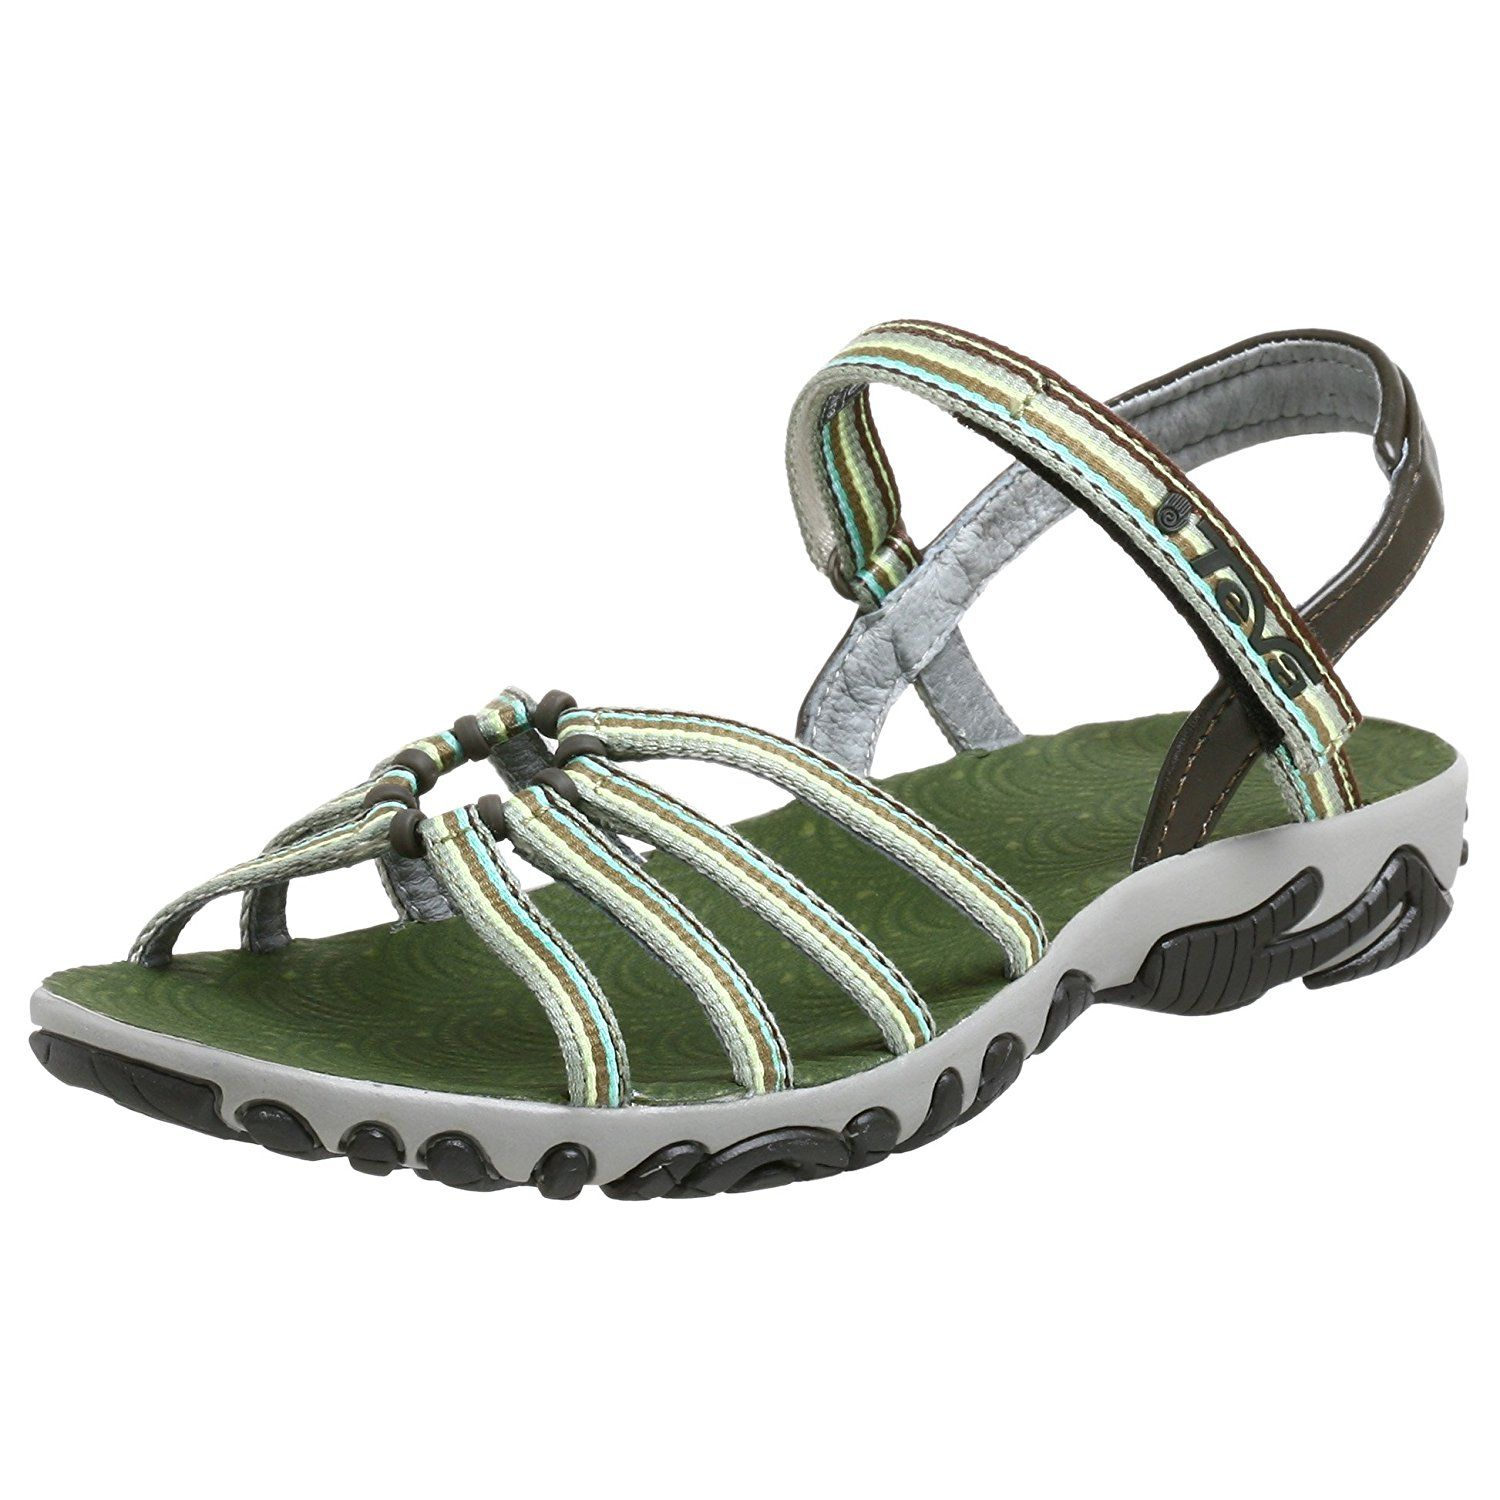 c37fdbe0f33 Teva Women s Kayenta Outdoor Sandal -- Special product just for you. See it  now!   Teva sandals